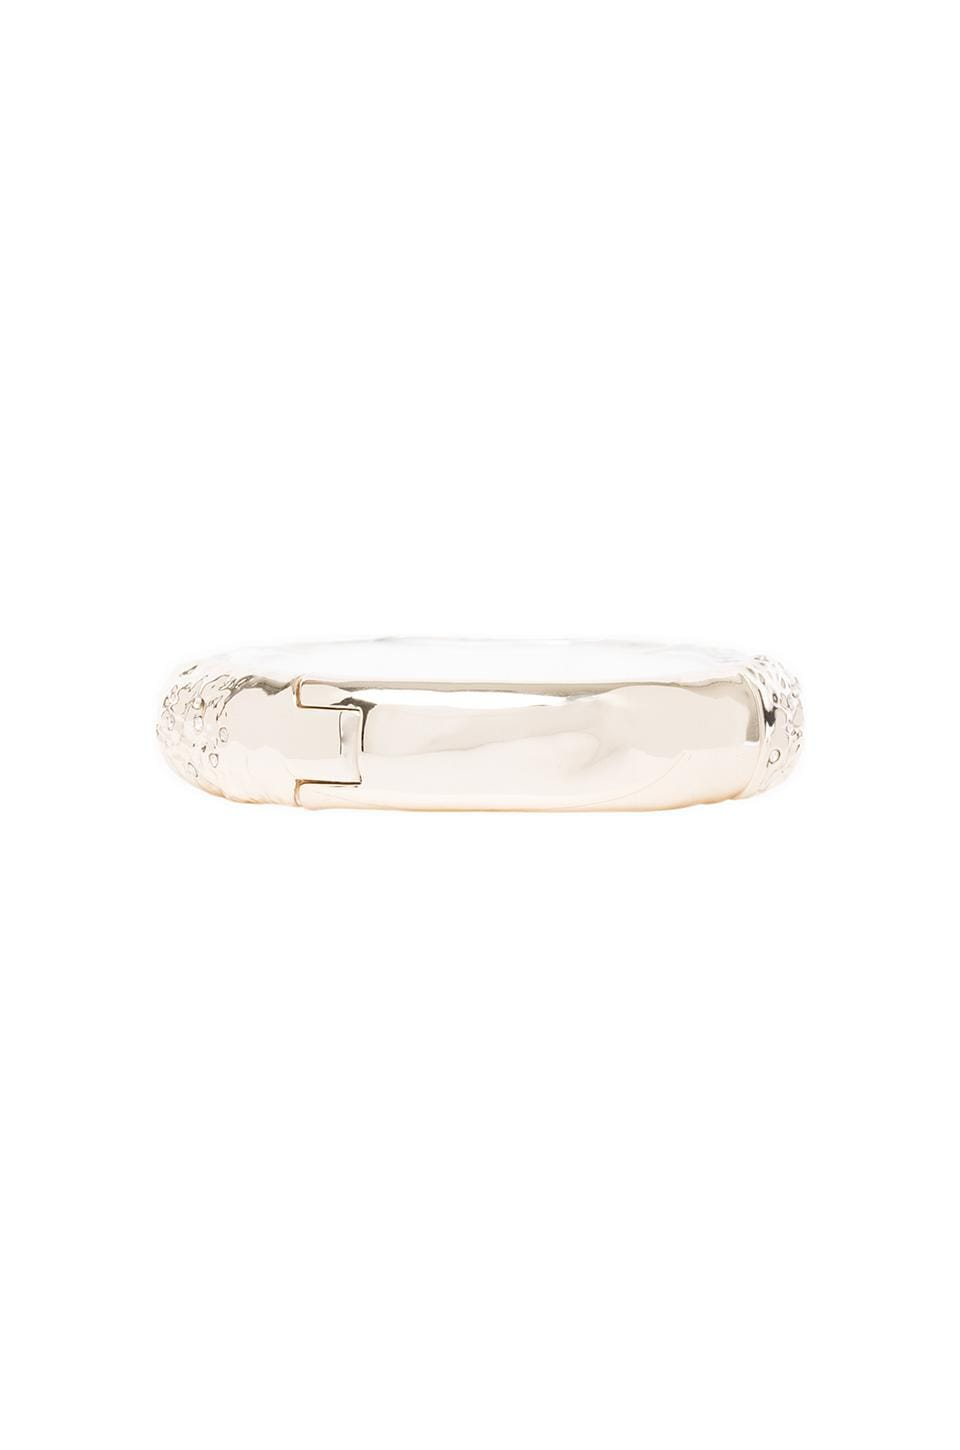 Alexis Bittar Hinge Bangle in Gold